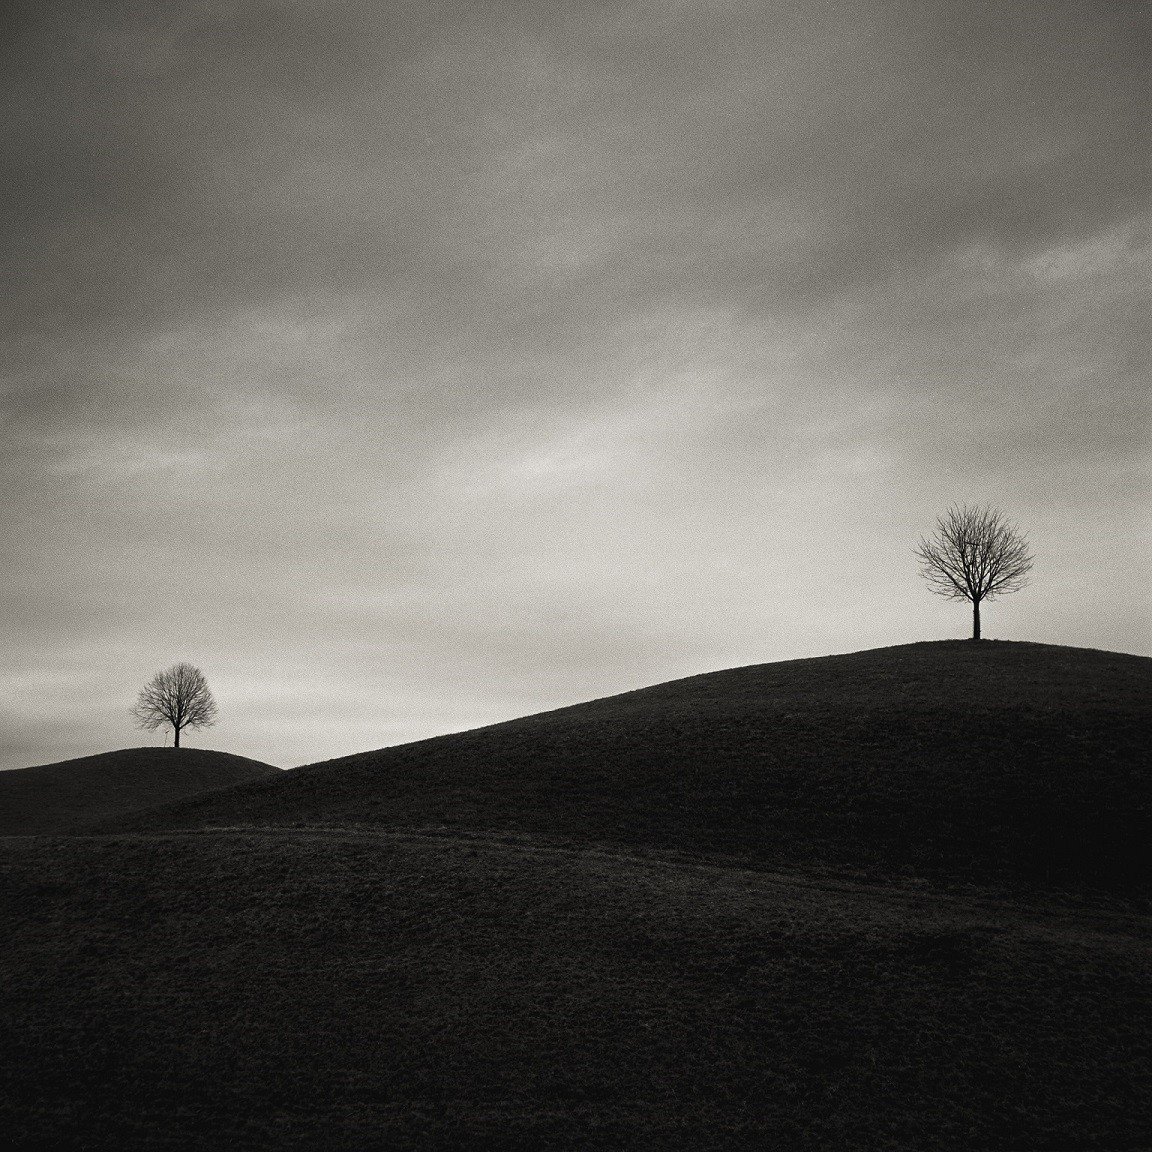 Going beyond representational photography of landscapes and nature - Part 2